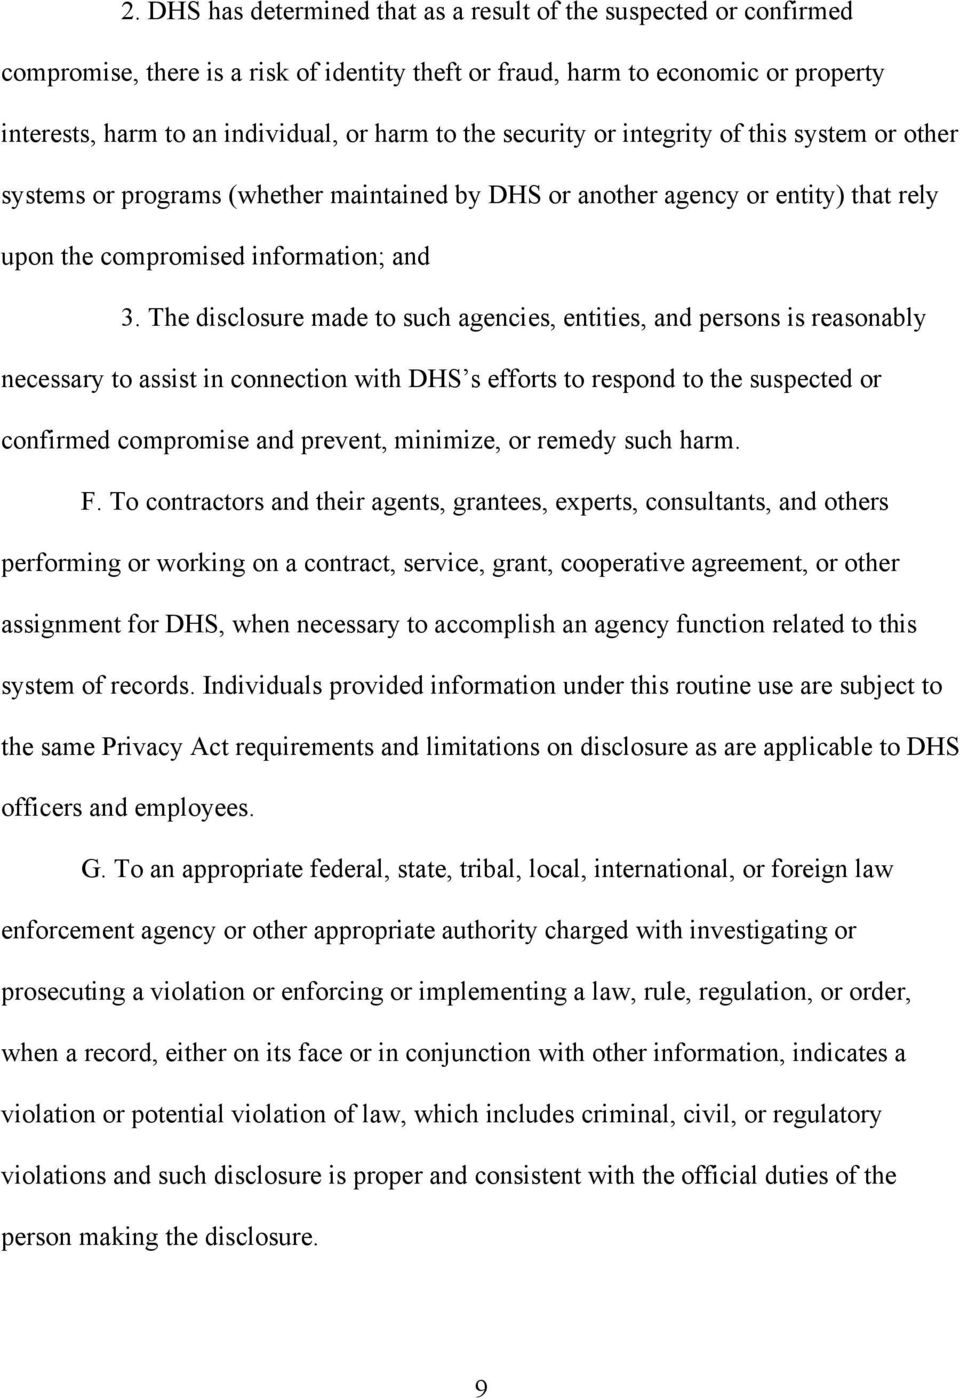 The disclosure made to such agencies, entities, and persons is reasonably necessary to assist in connection with DHS s efforts to respond to the suspected or confirmed compromise and prevent,